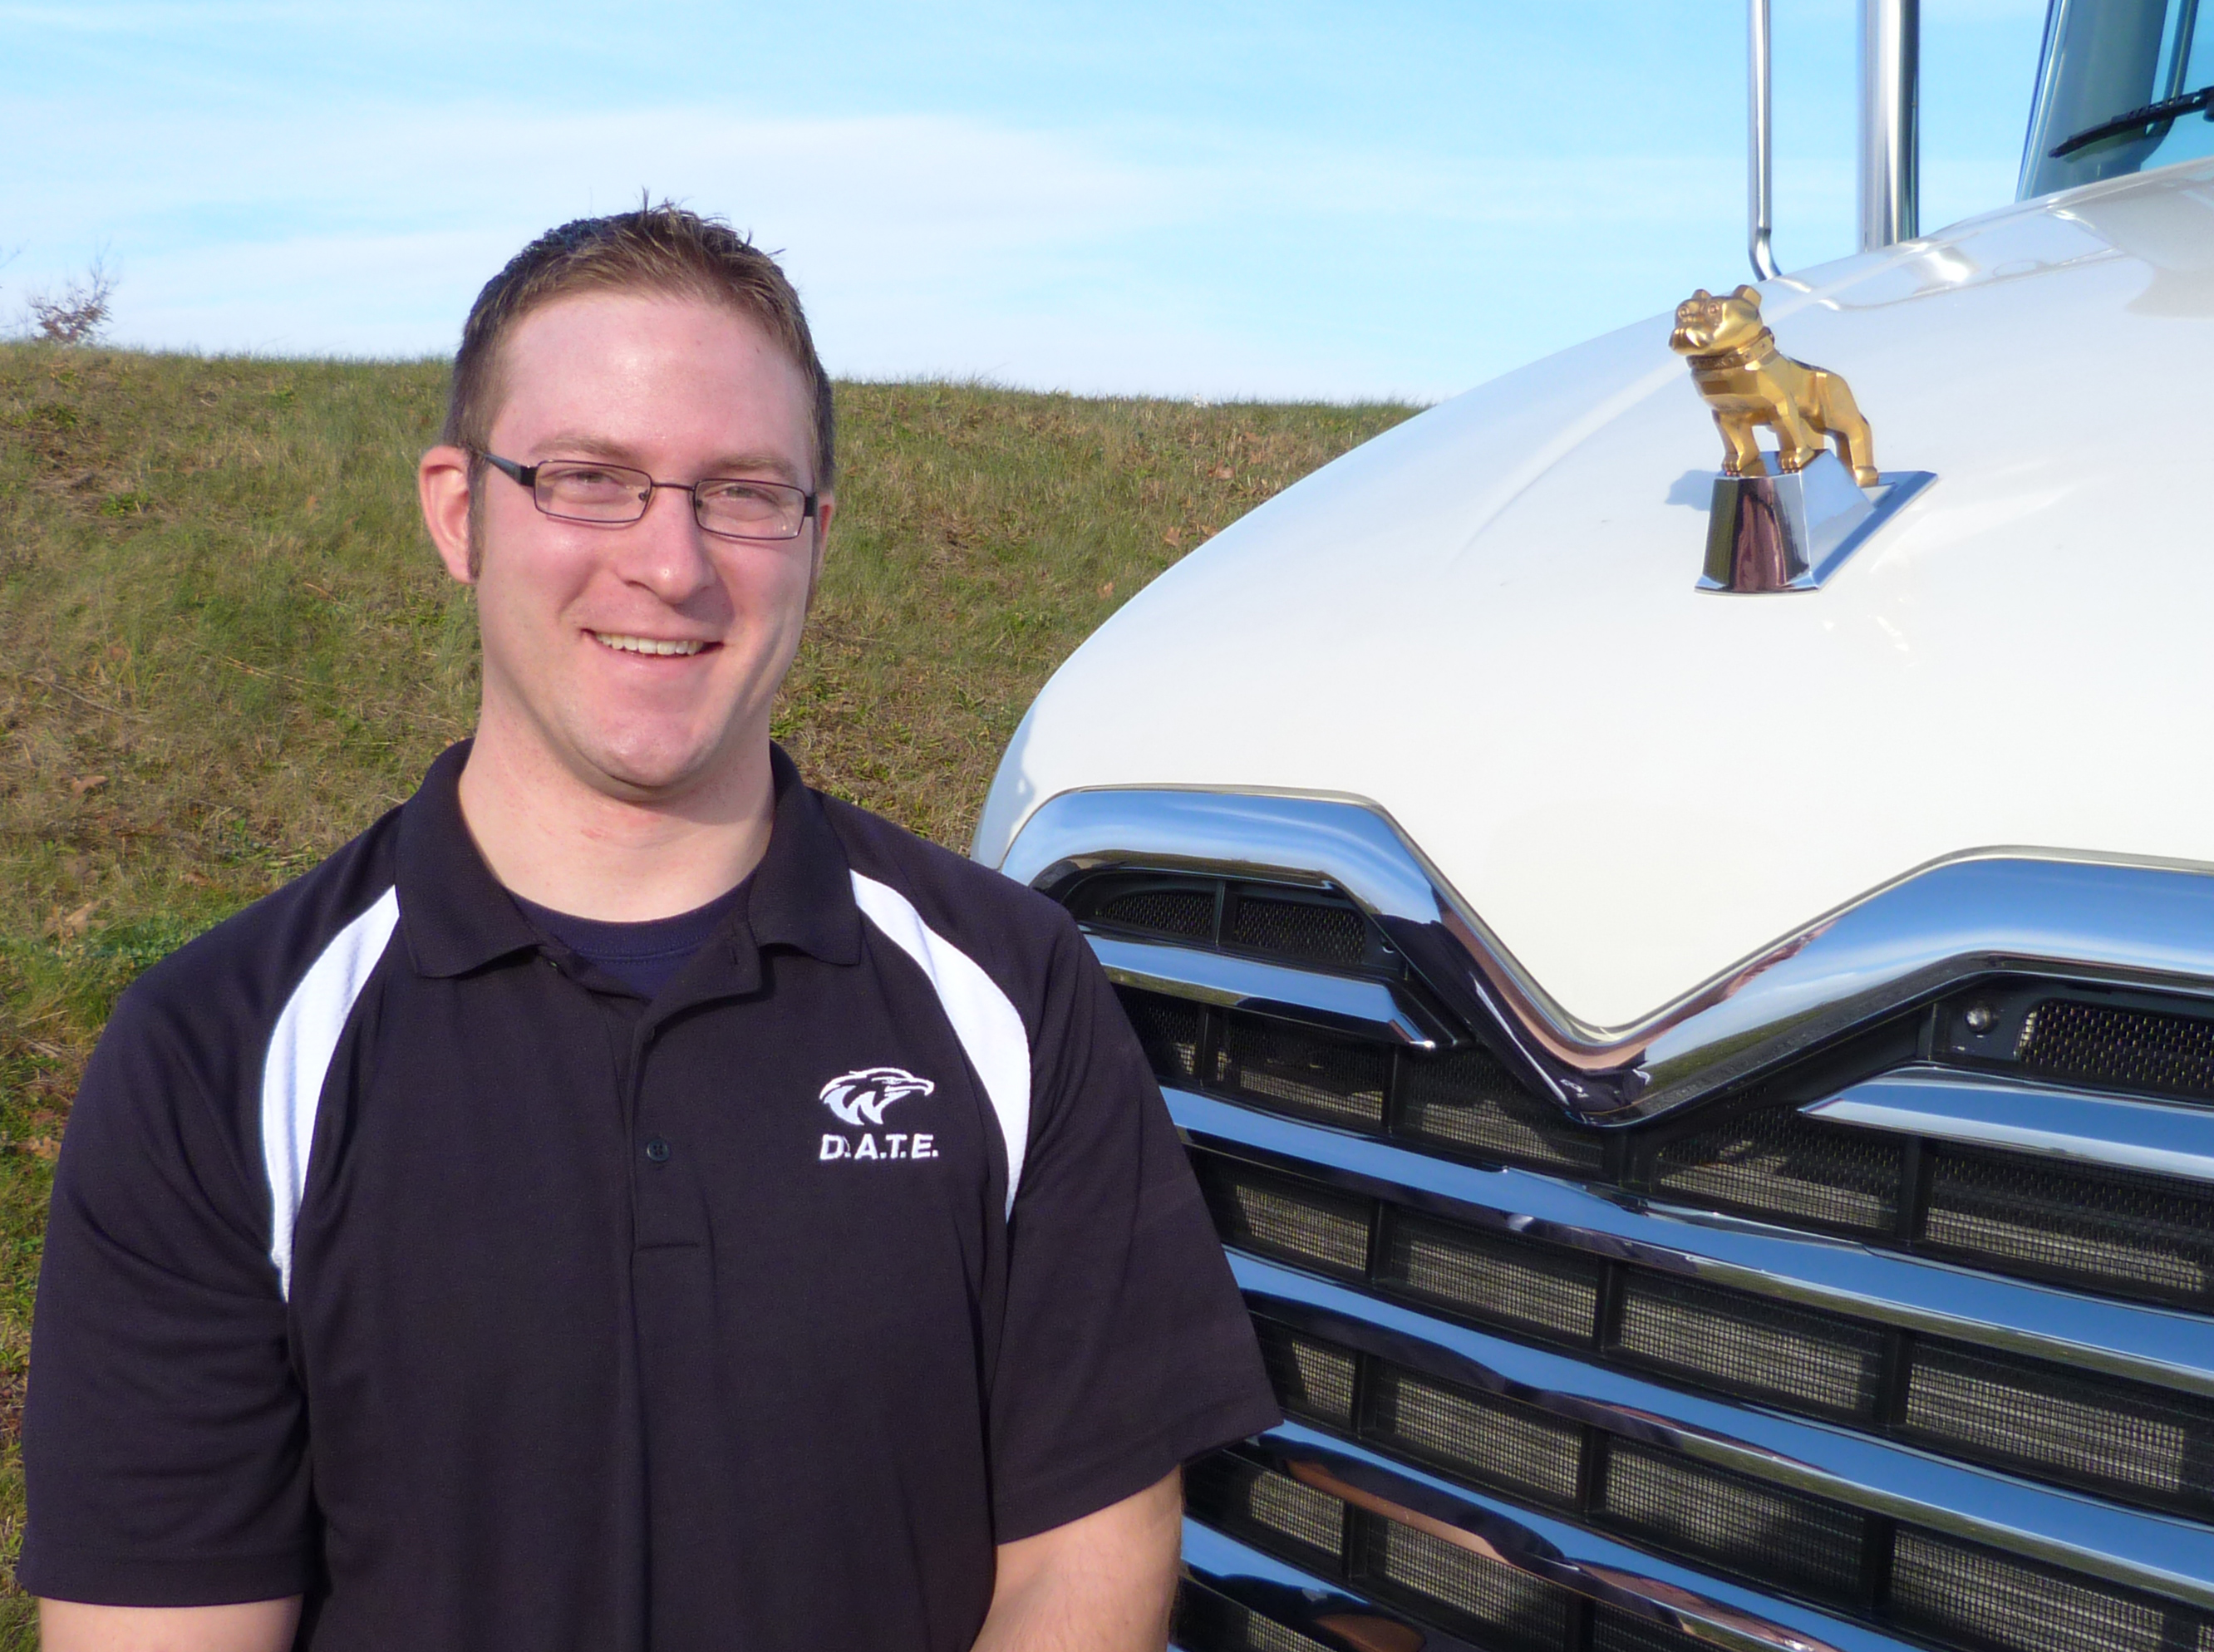 Student enrolled in Wyotech Diesel Advanced Technology